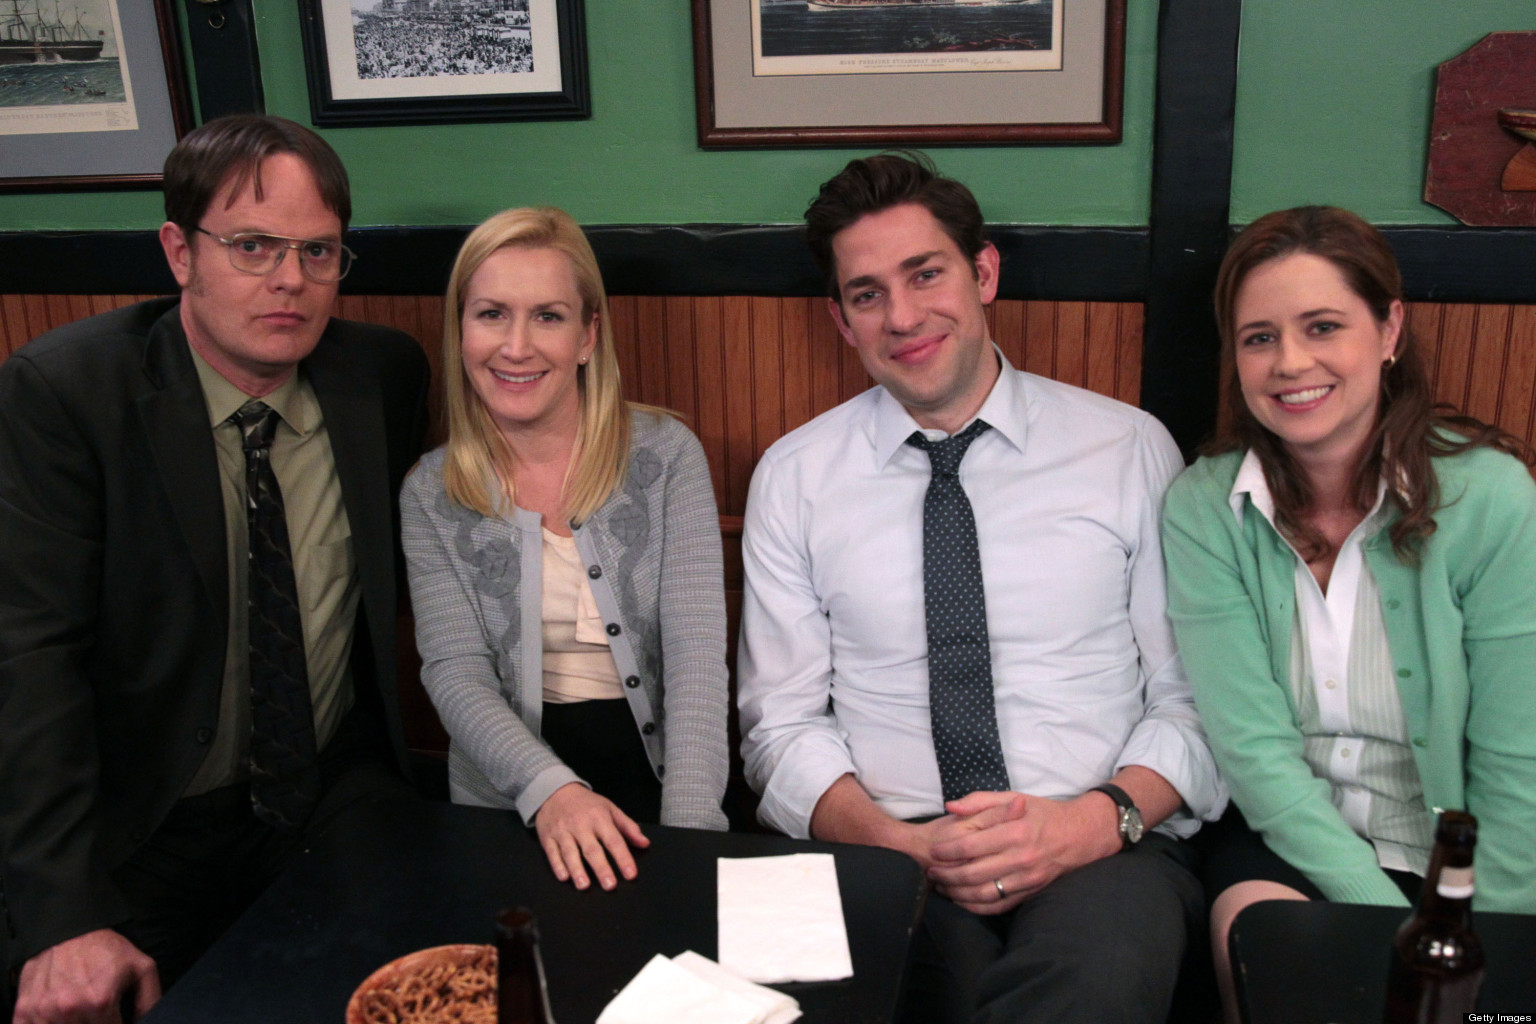 Dwight And Angela's 'office' Wedding Will Include Lots Of